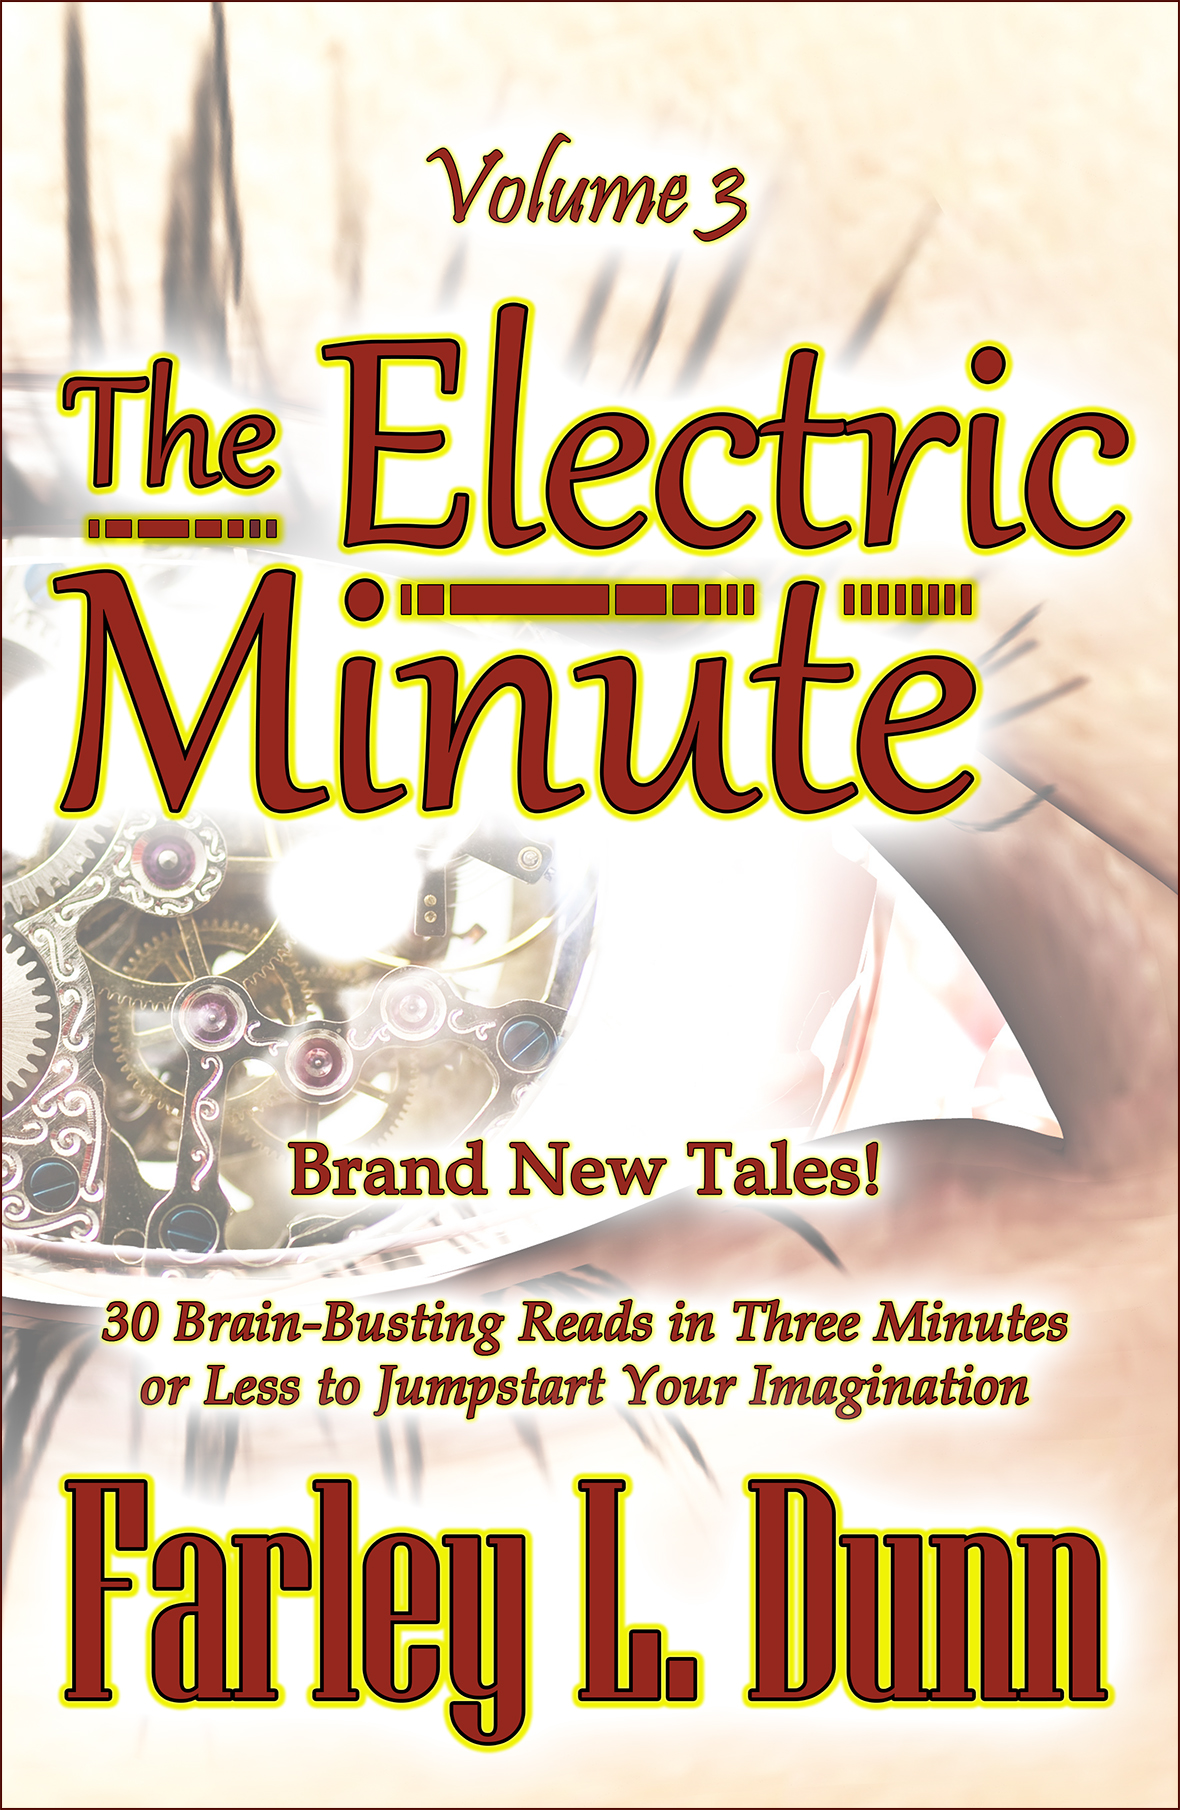 The Electric Minute Cover Vol 3 Front V1